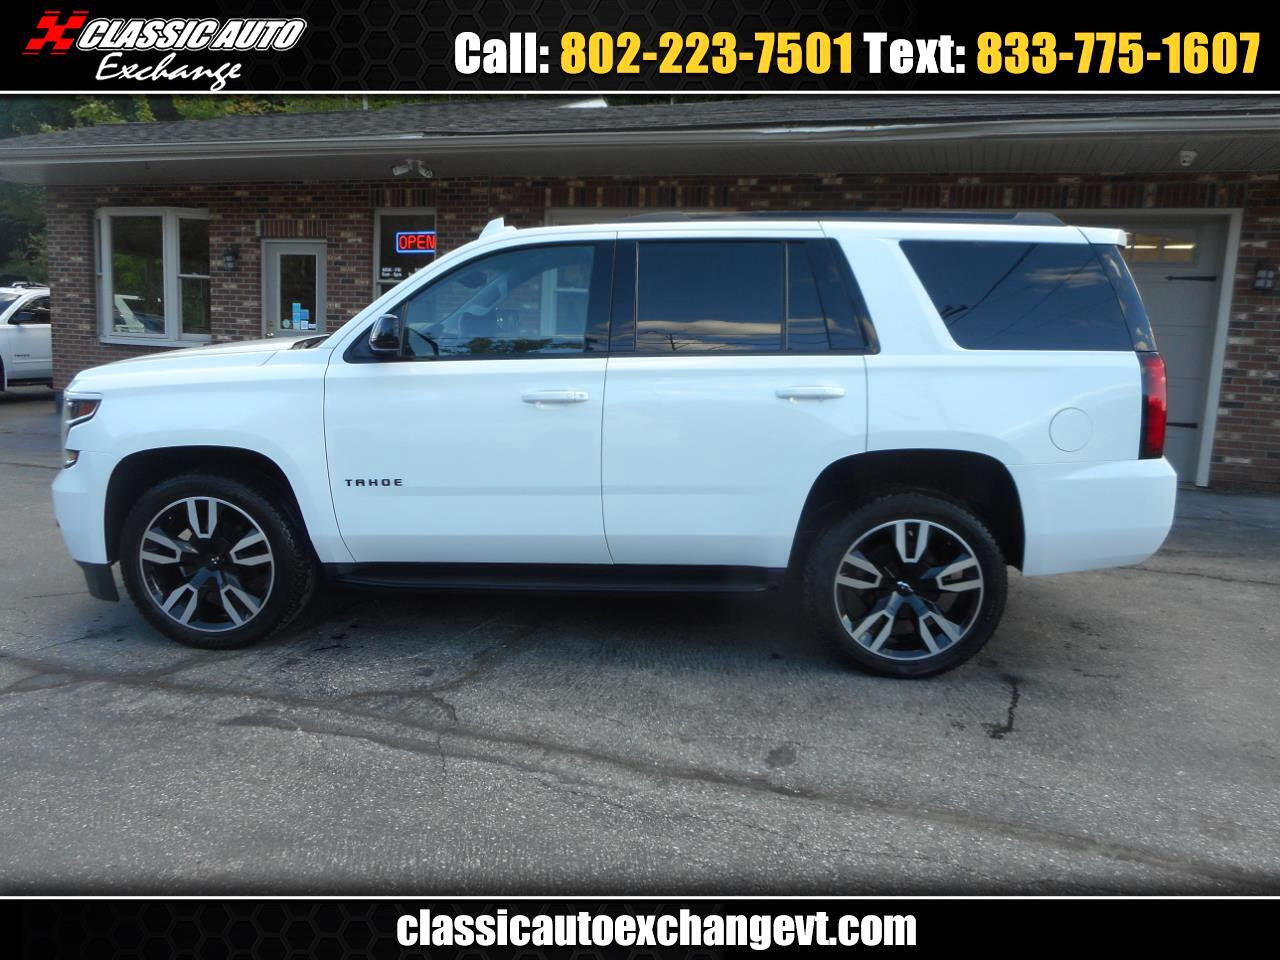 Chevrolet Tahoe RST 4WD 2020